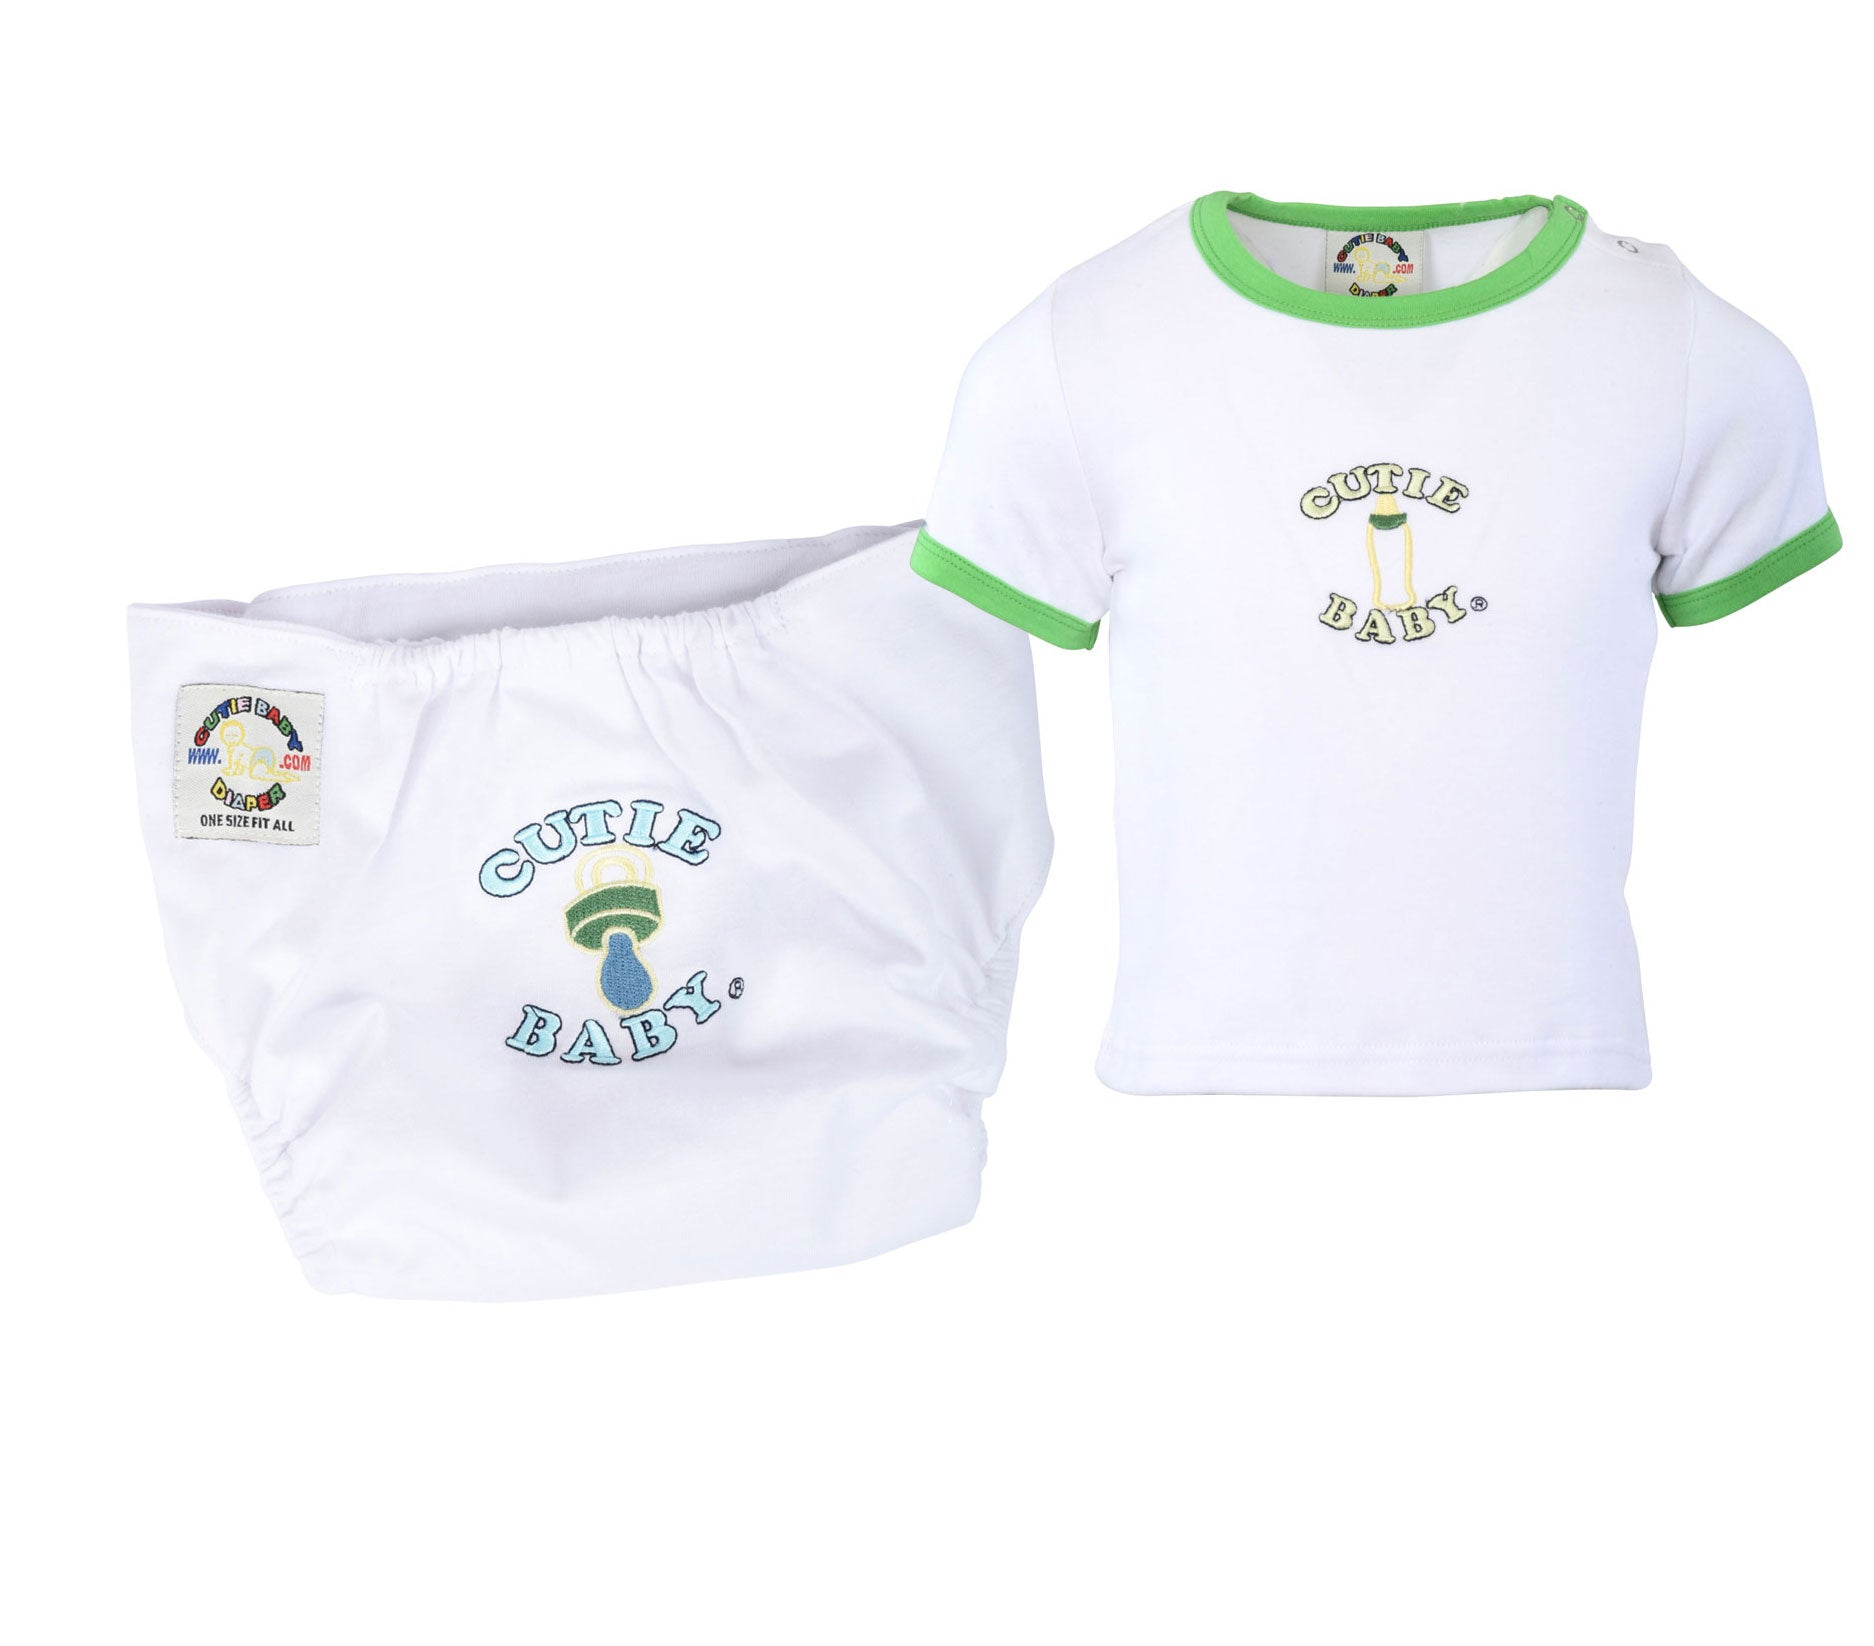 Buy 15 Diapers Get 5 Free Diaper & 3 Free Matching T-shirt